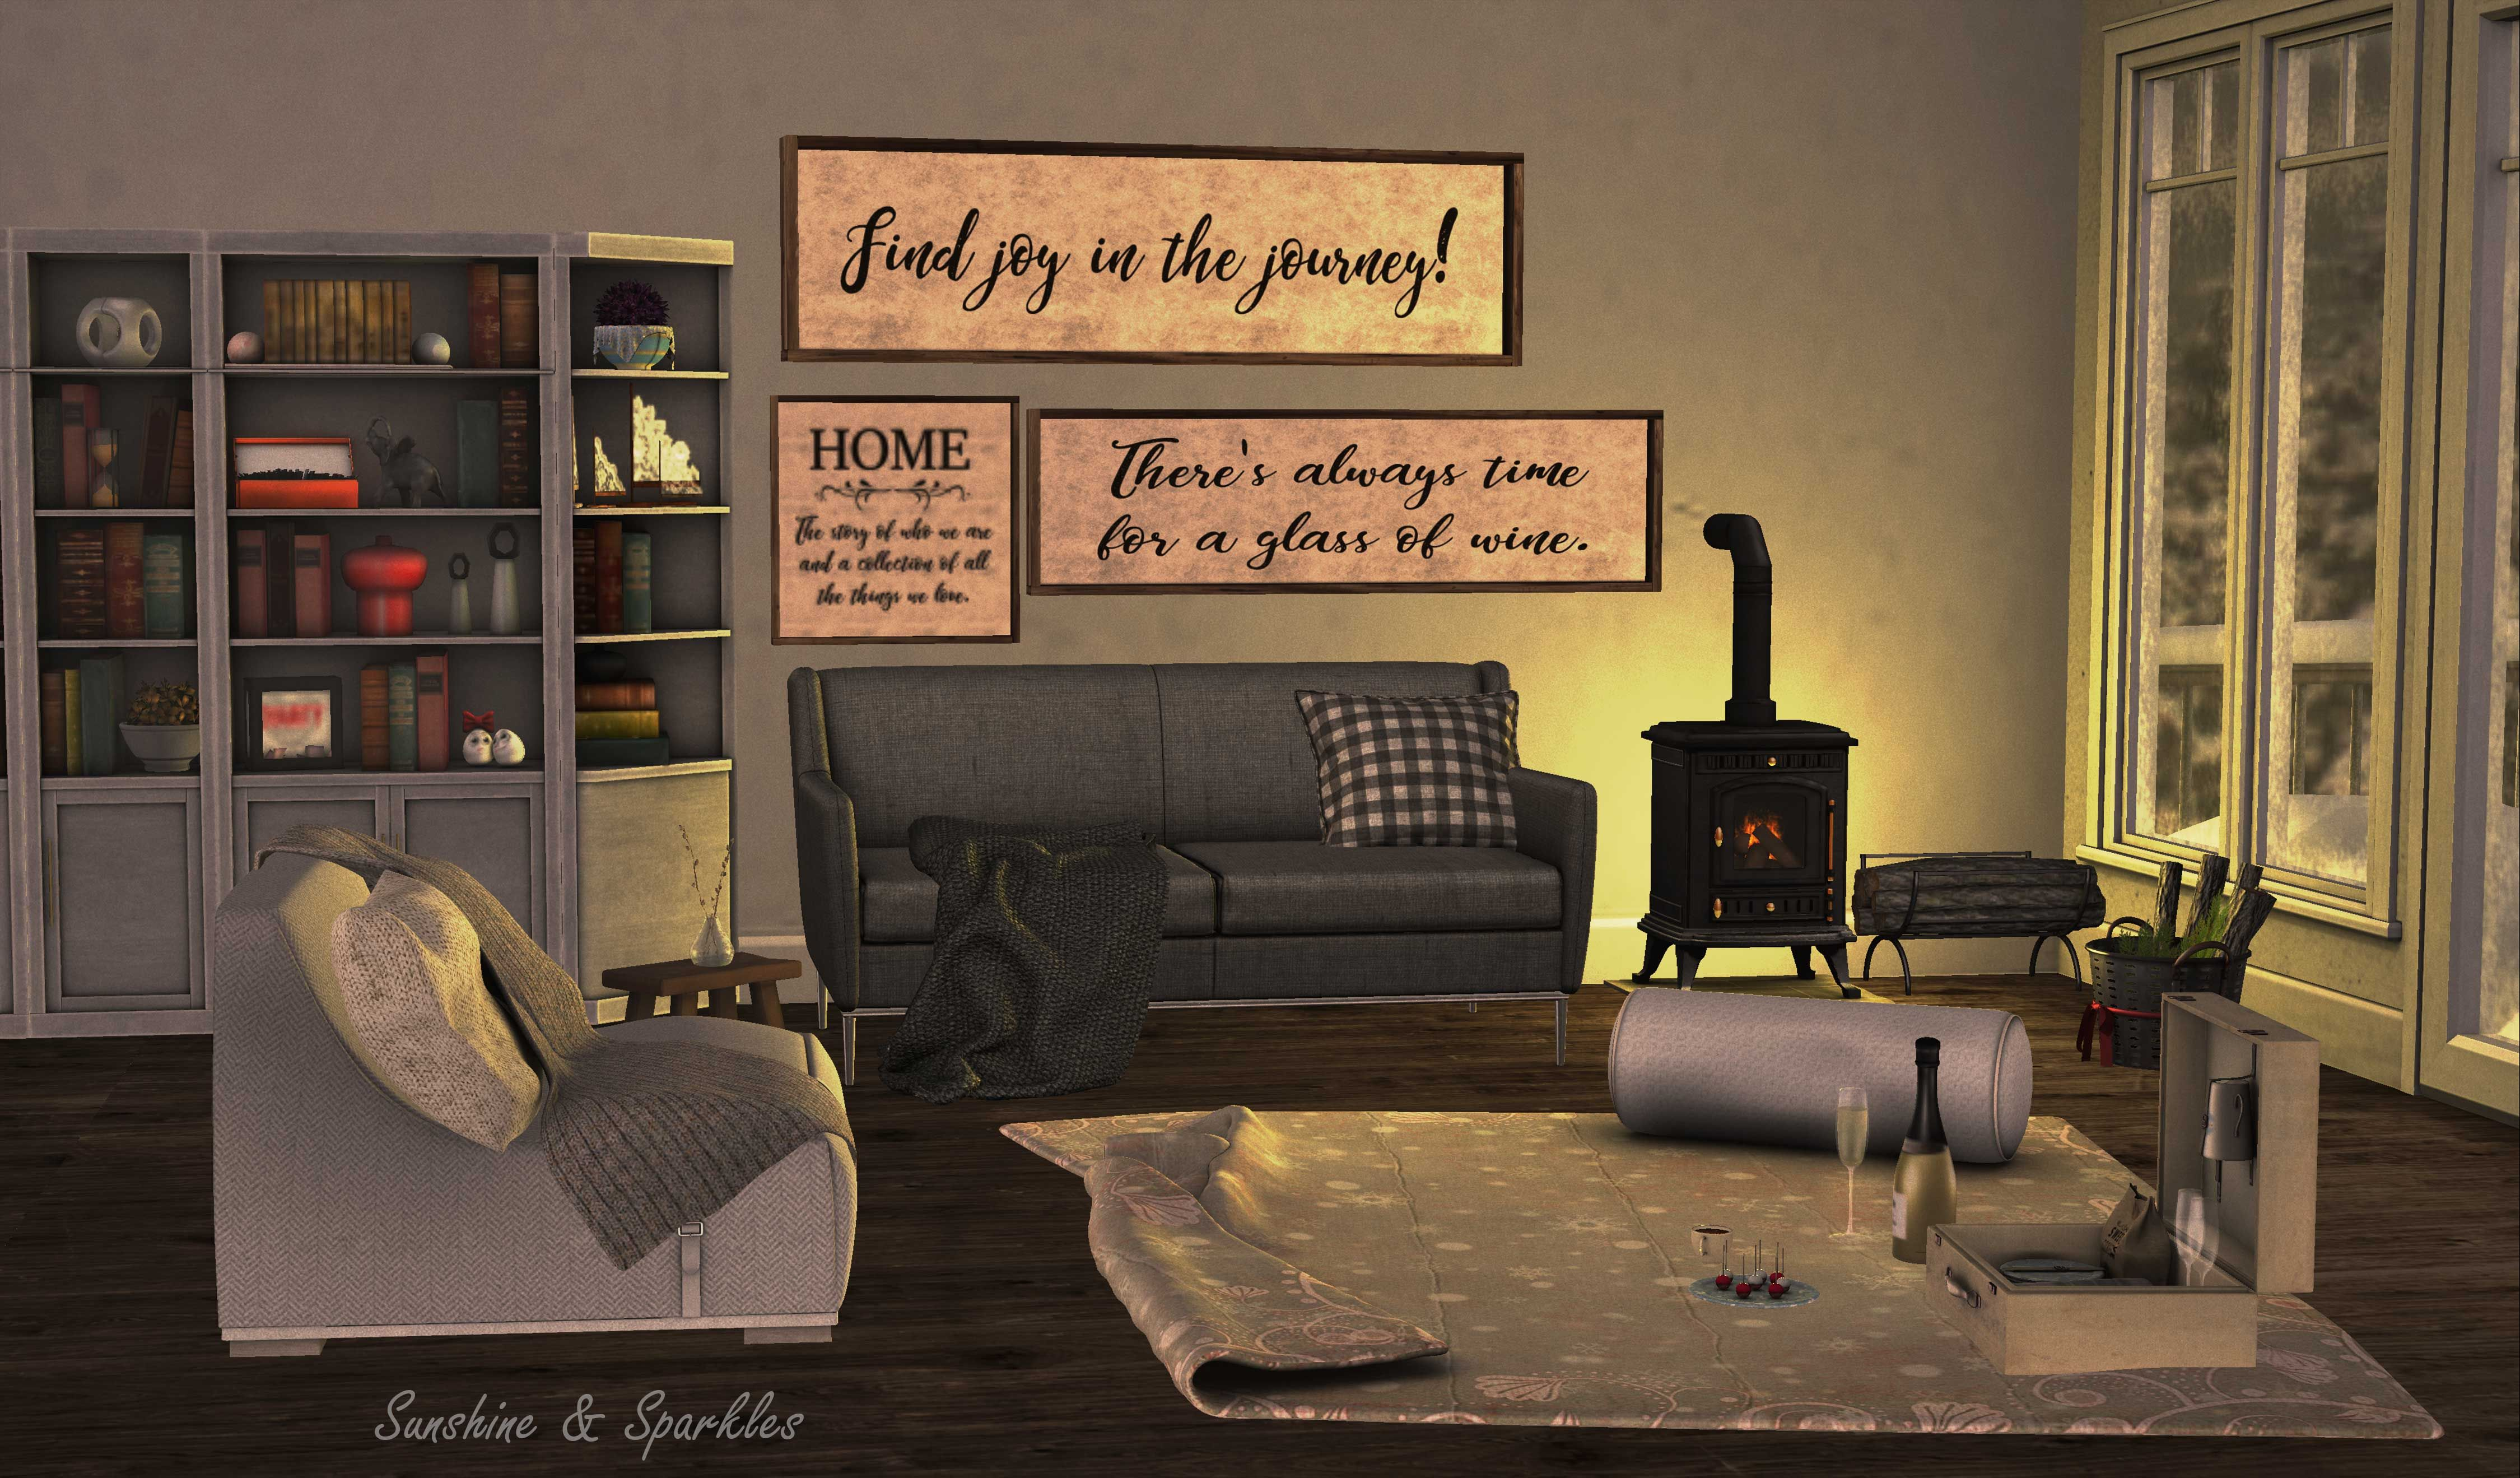 Pin By Jules Slblog On Second Life Blog Pictures Finding Joy